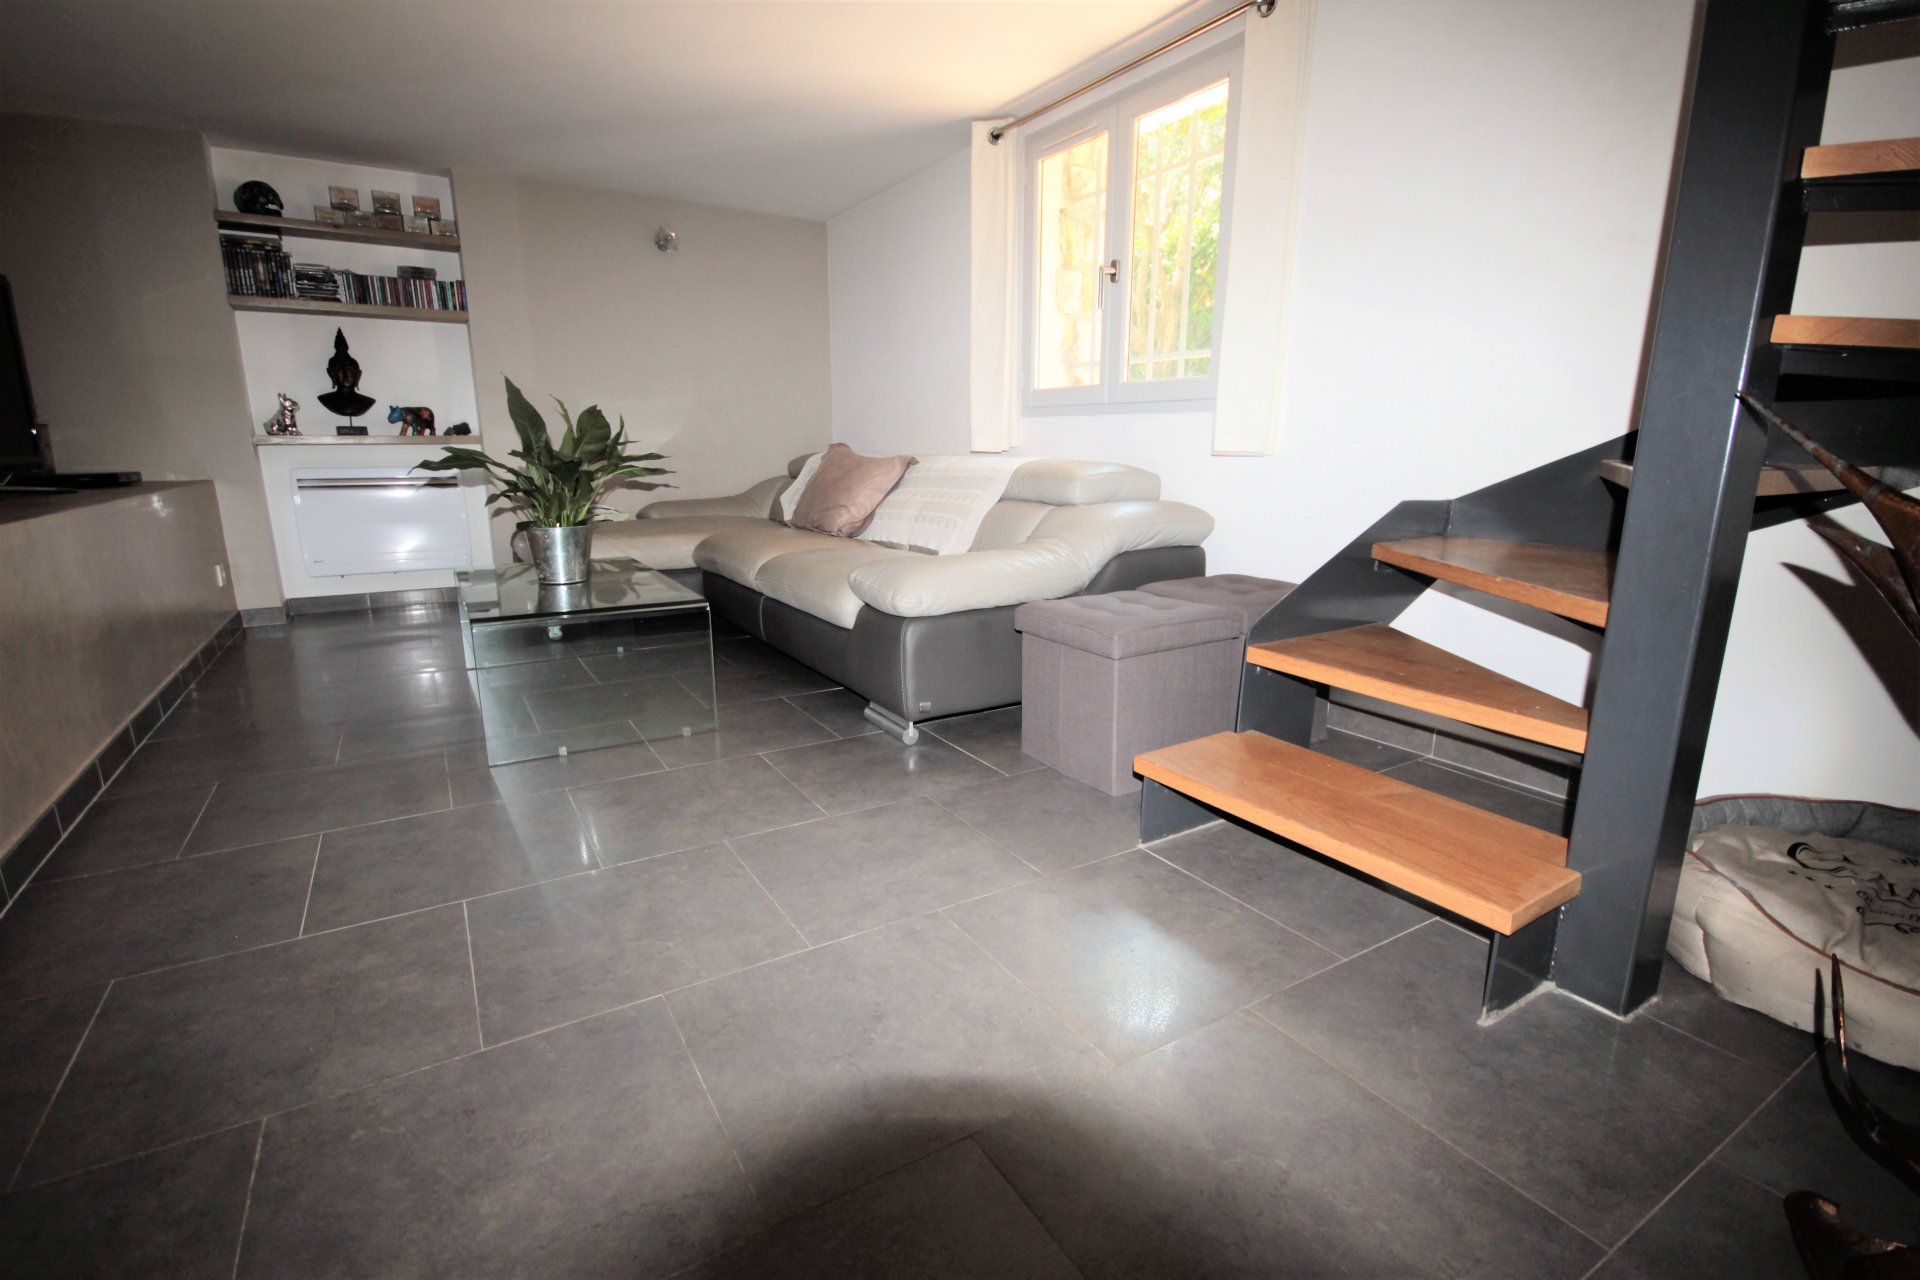 CANNET SALE HOUSE 4 ROOMS IN ABSOLUTE QUIET